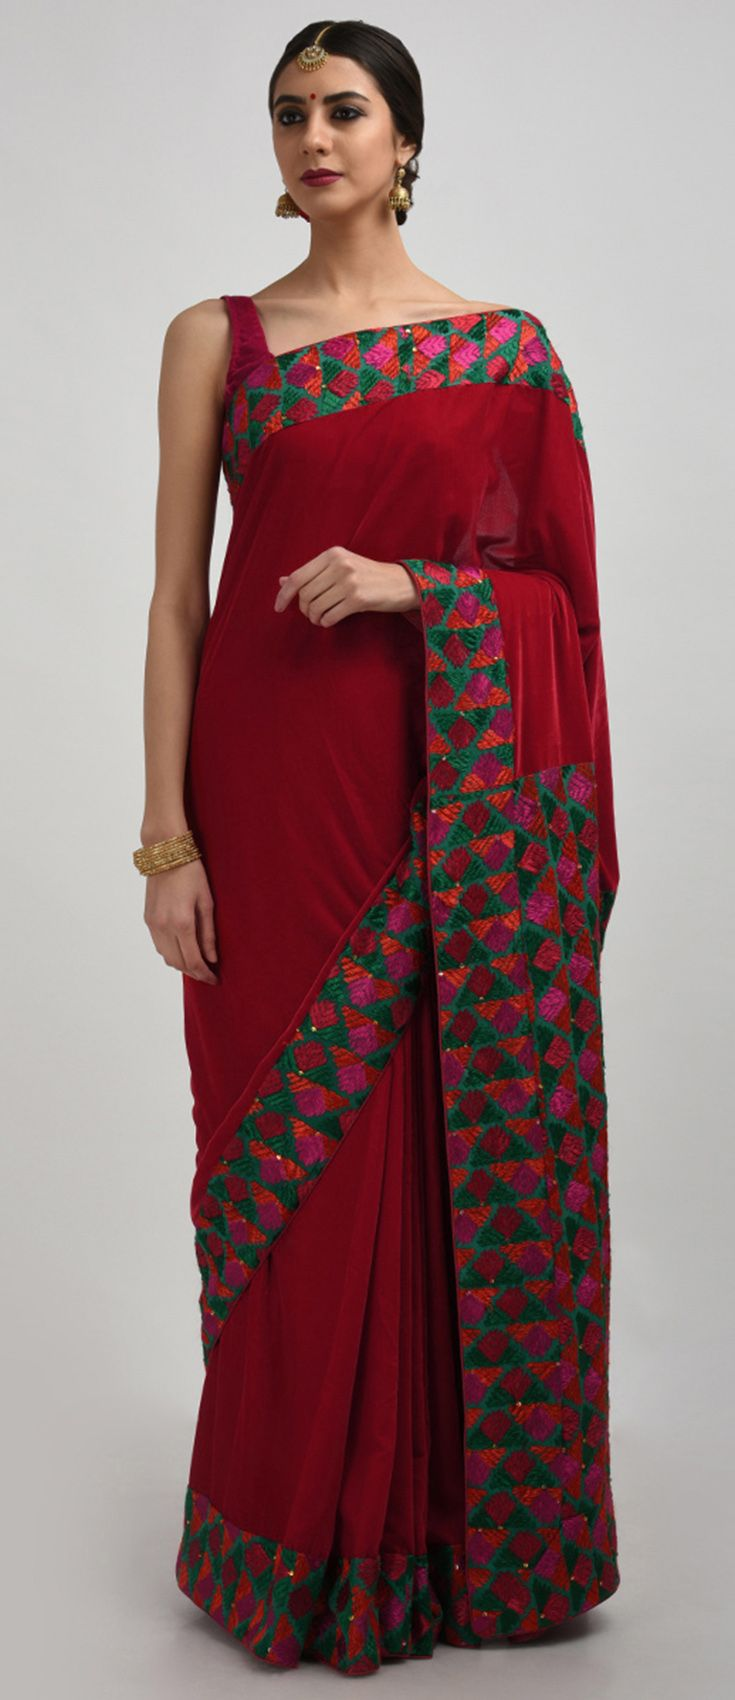 Velvet saree images blood red velvet saree with green phulkari hand embroidery  the